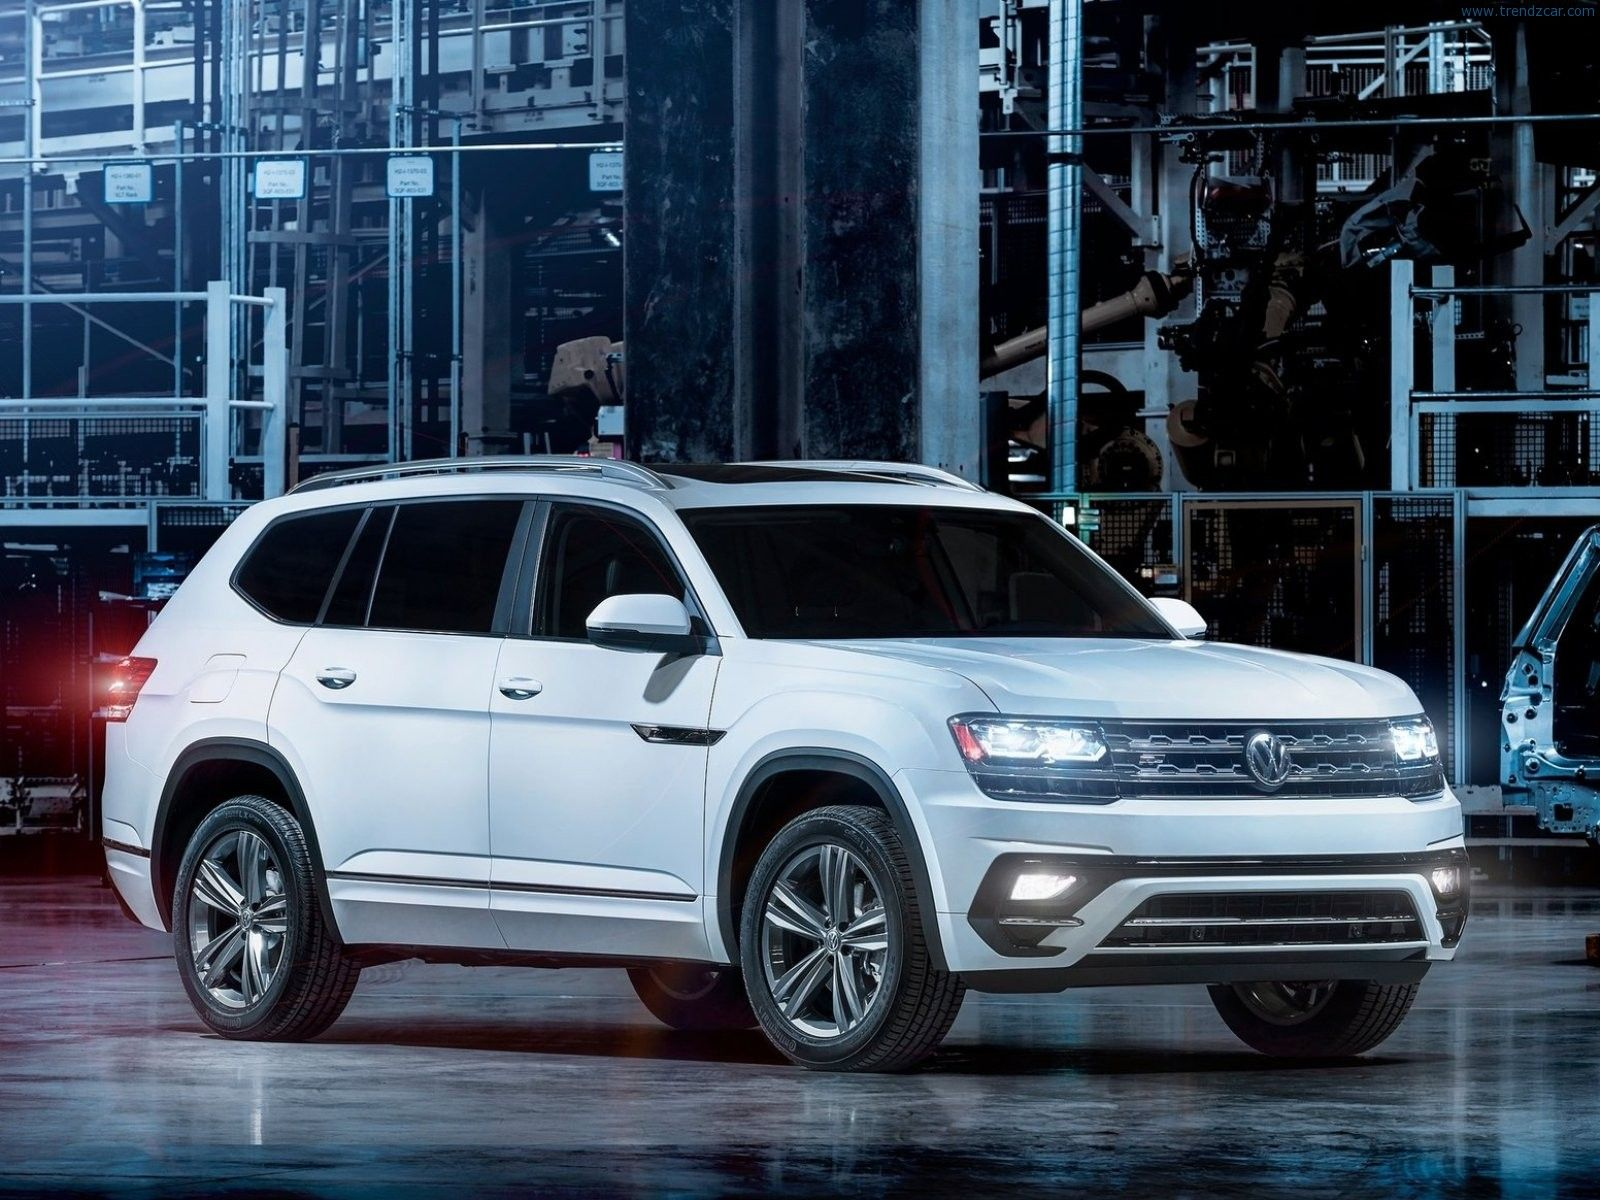 2017 Volkswagen Atlas R Line Why An R Line Derivative Of This Monstrosity With Images Volkswagen Touareg Volkswagen Best Compact Suv